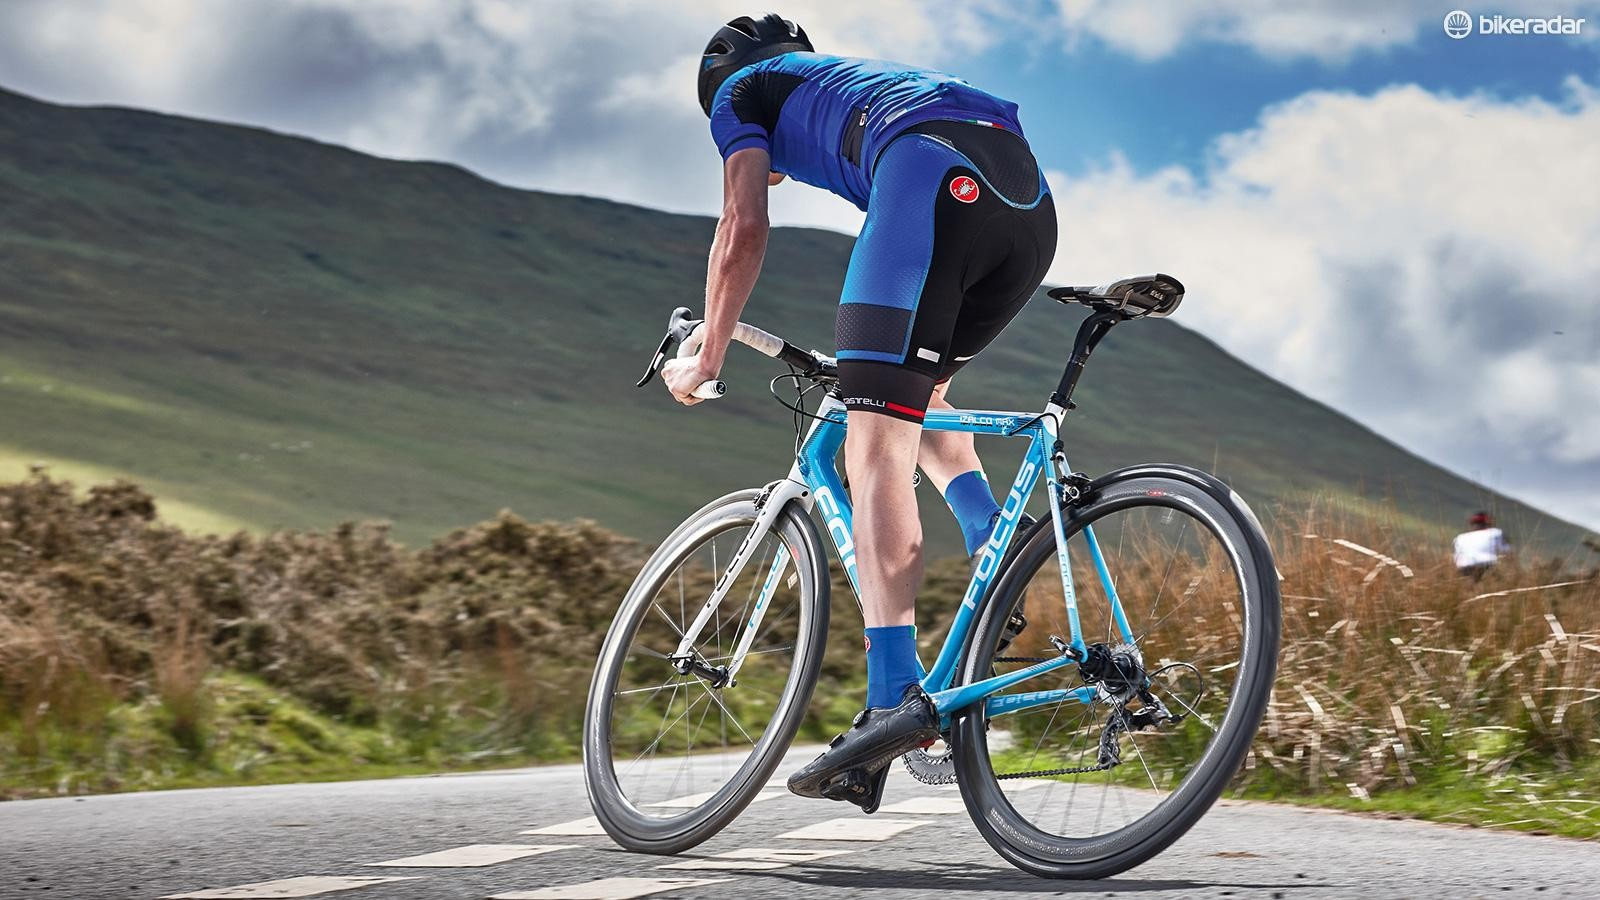 The Izalco Max is a genuinely great ride and we'd change nothing about the equipment